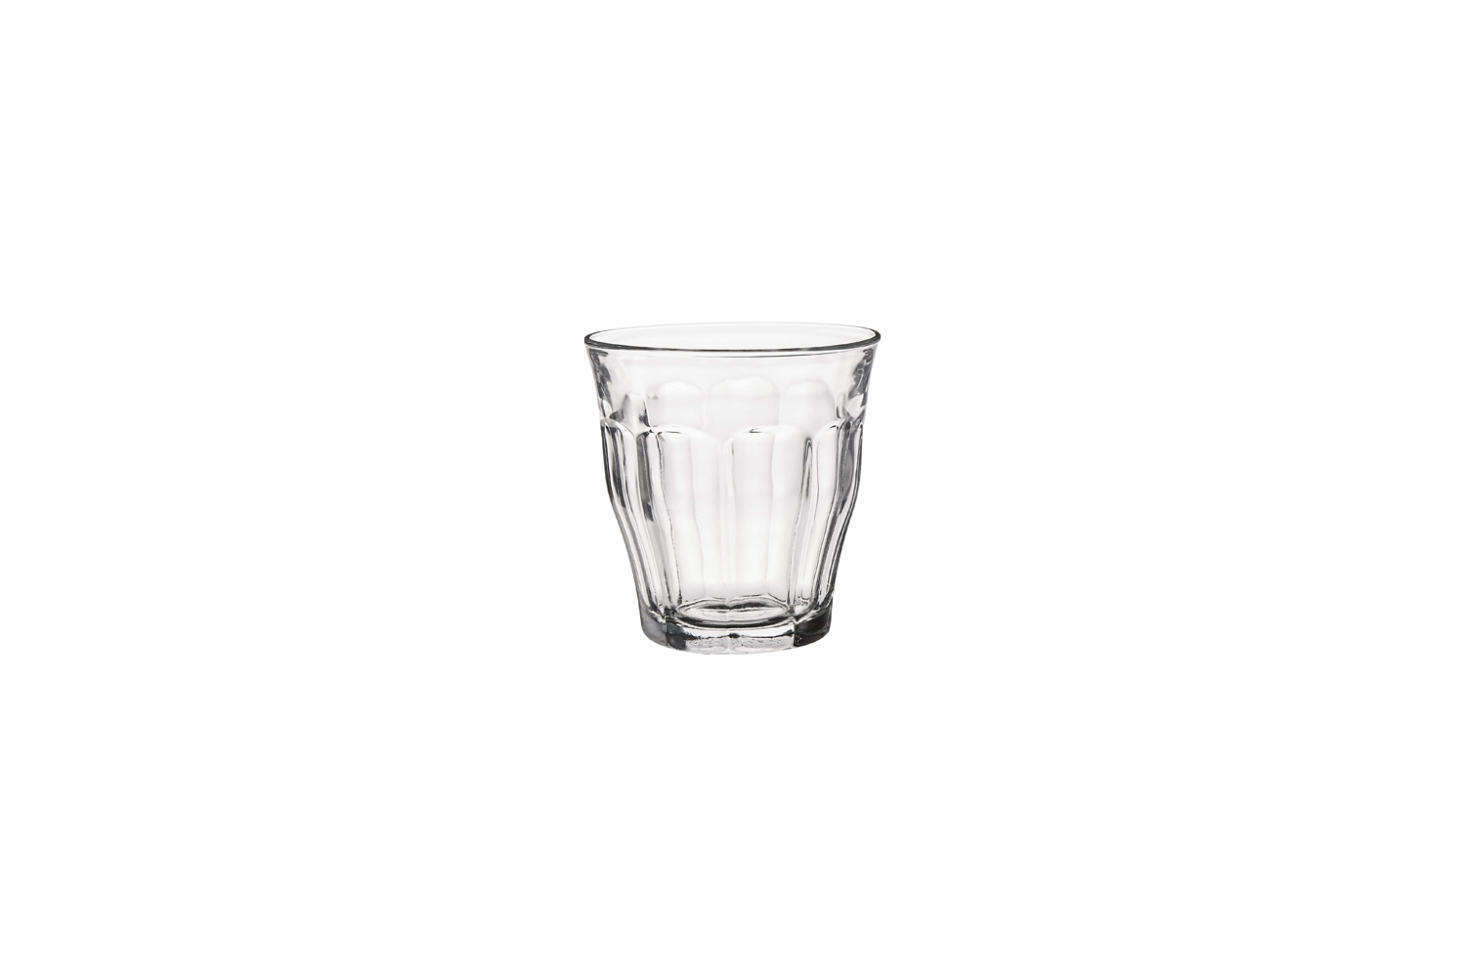 The classic French bistro wine glass from Picardie; a set of six is $.99 on Amazon.